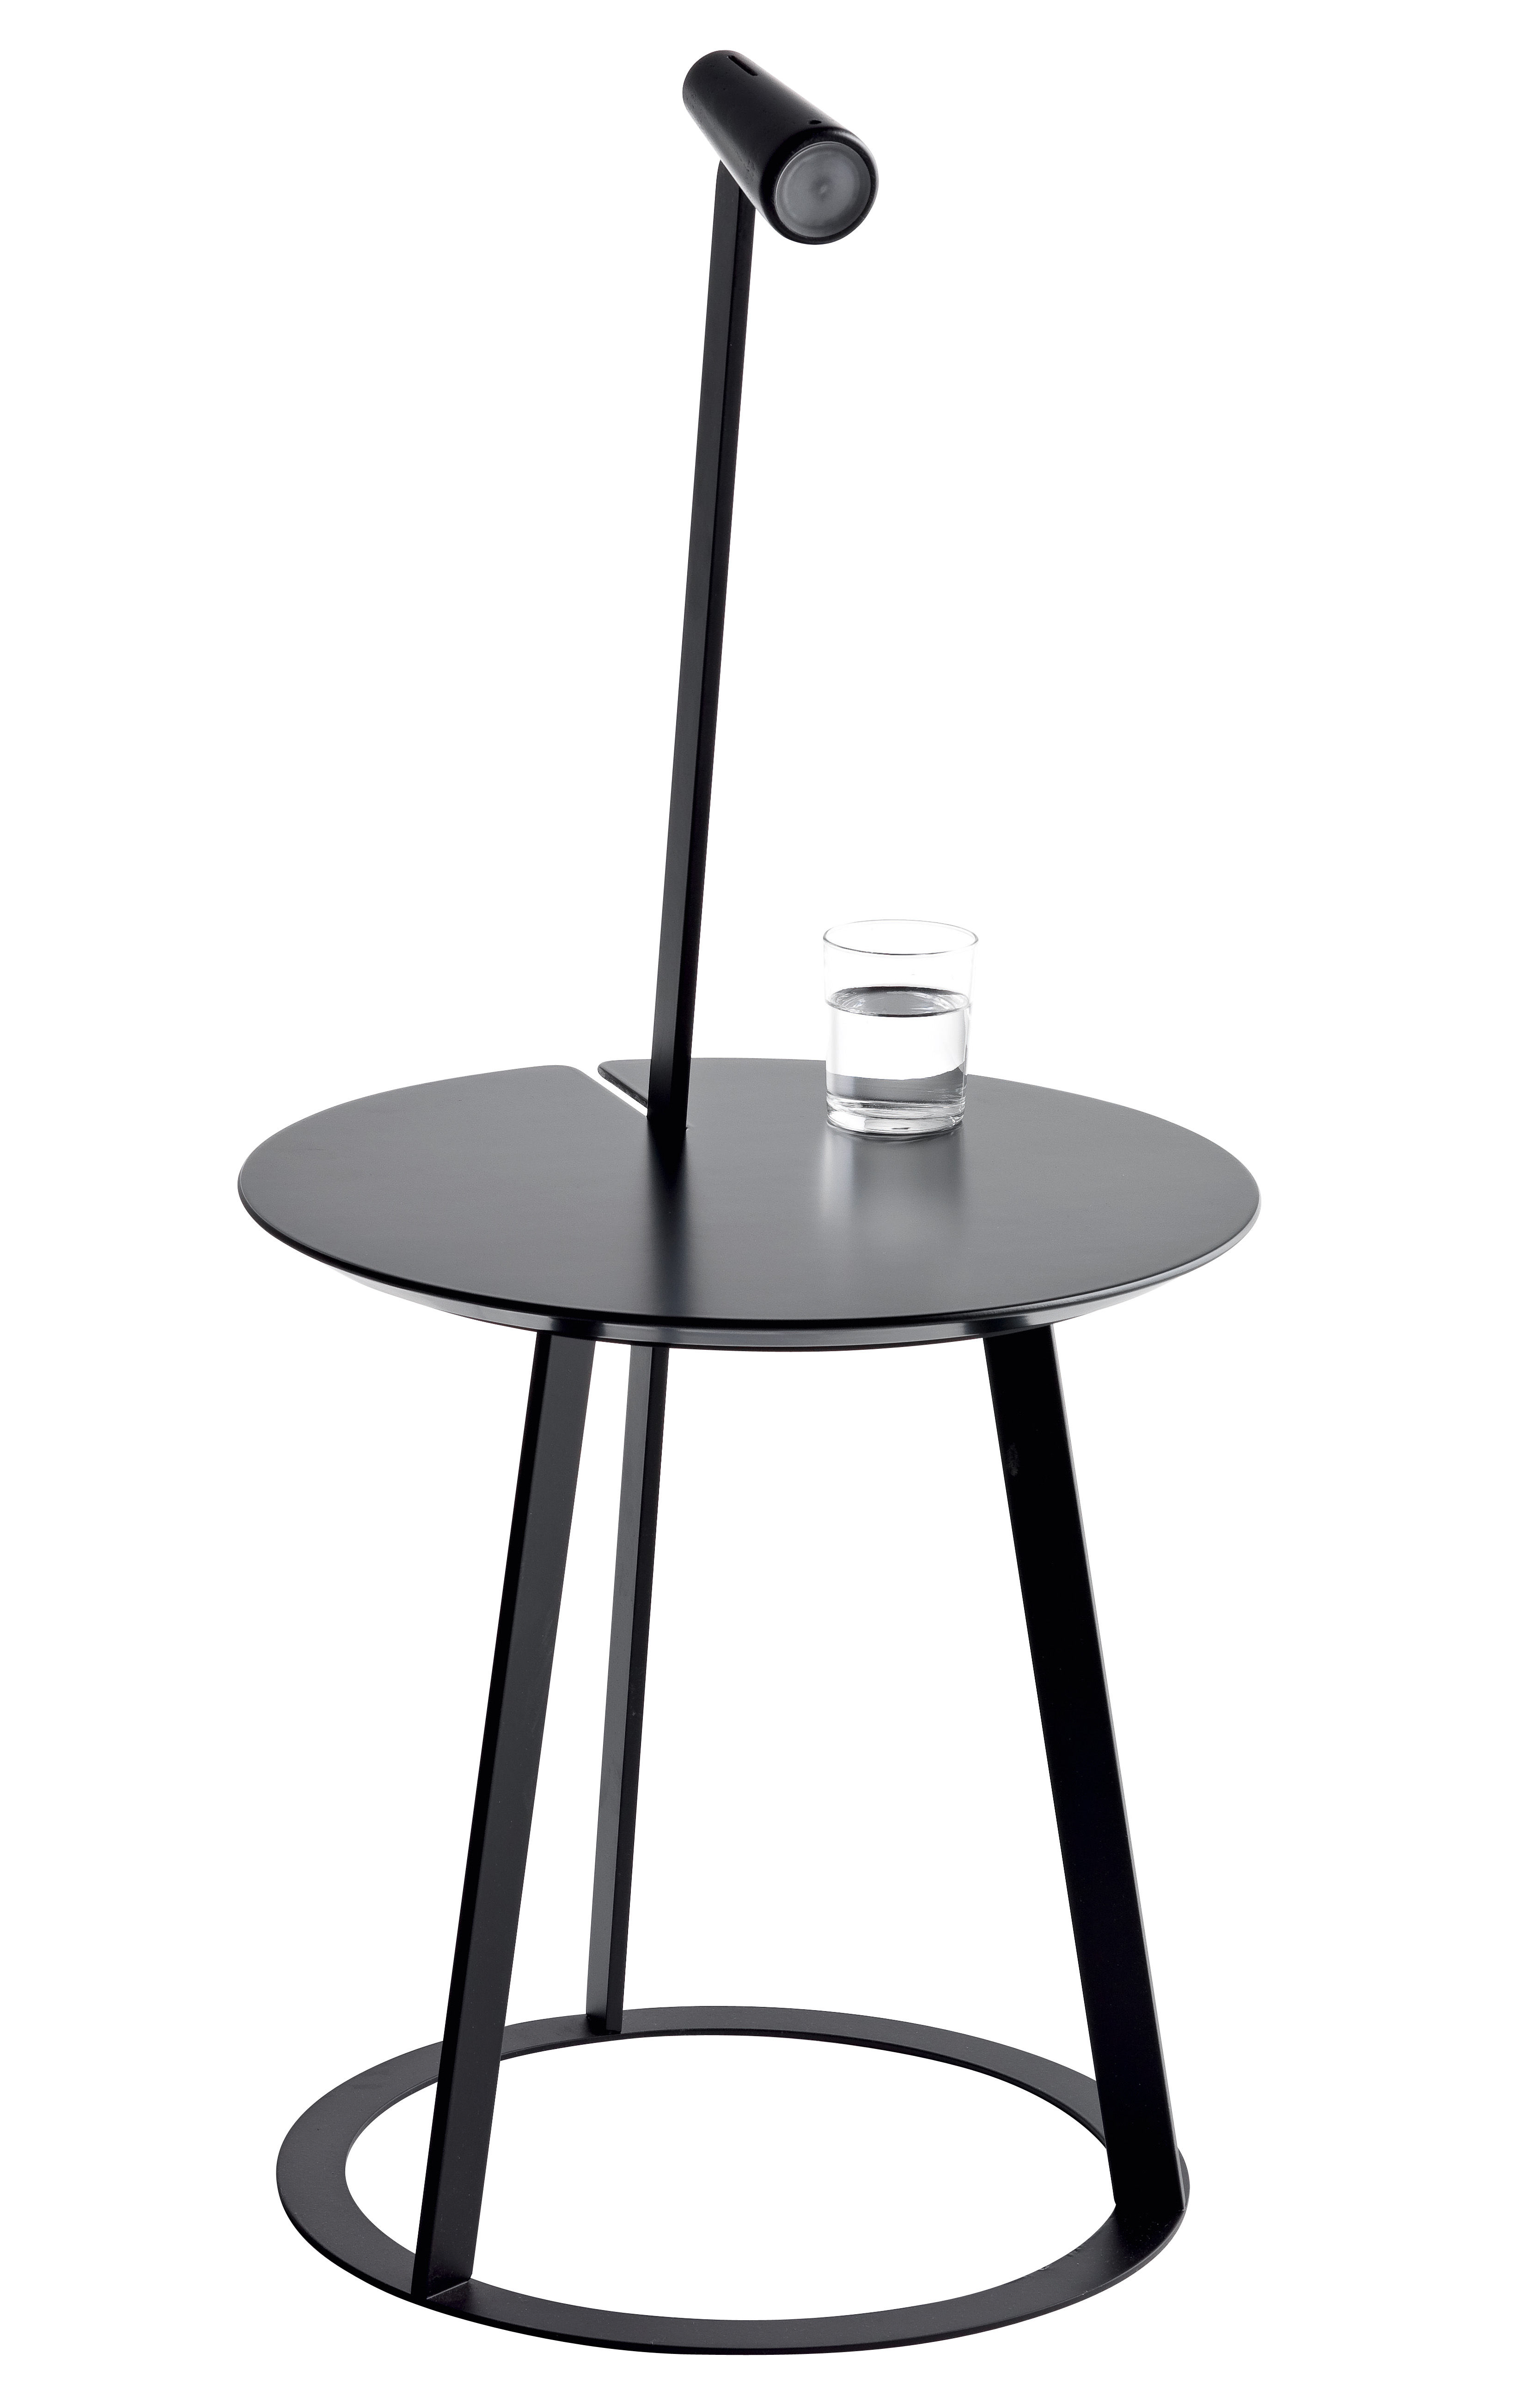 Furniture - Bedside & End tables - Albino End table - With LED lamp integrated by Horm - Black - Lacquered MDF, Lacquered steel, Lacquered wood